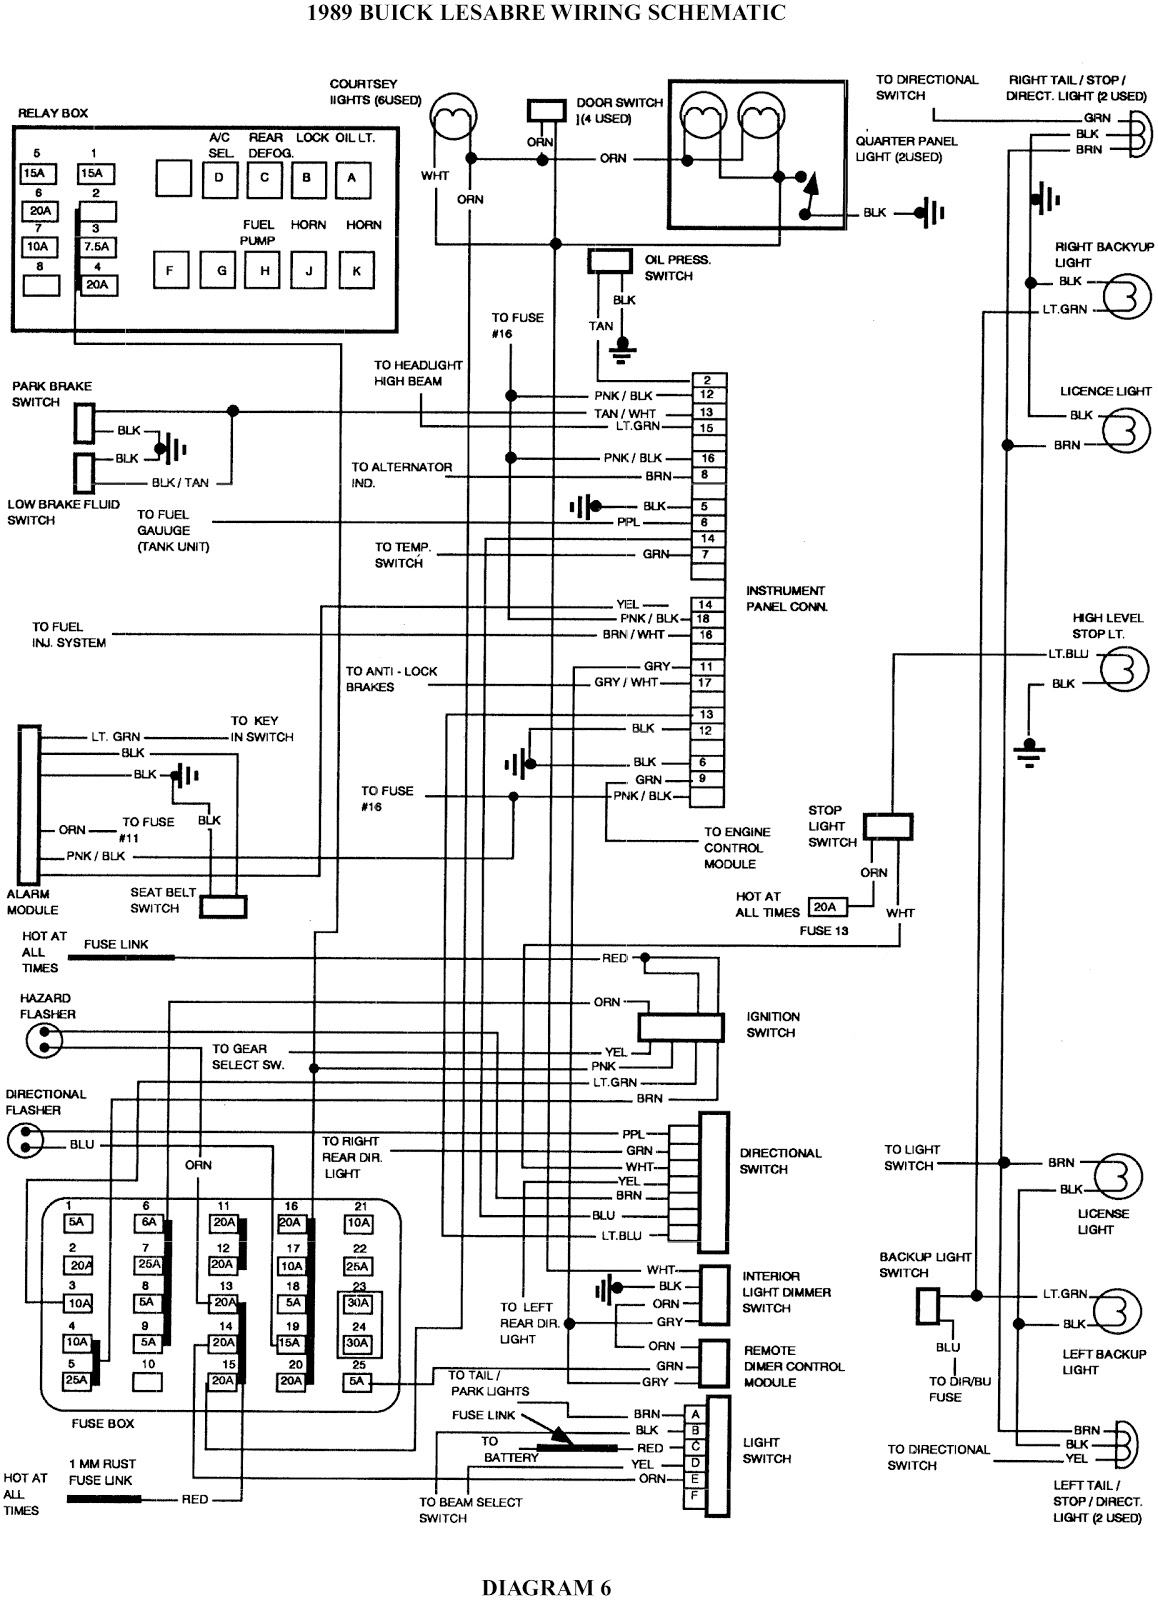 chevy hhr fog lights wiring diagram